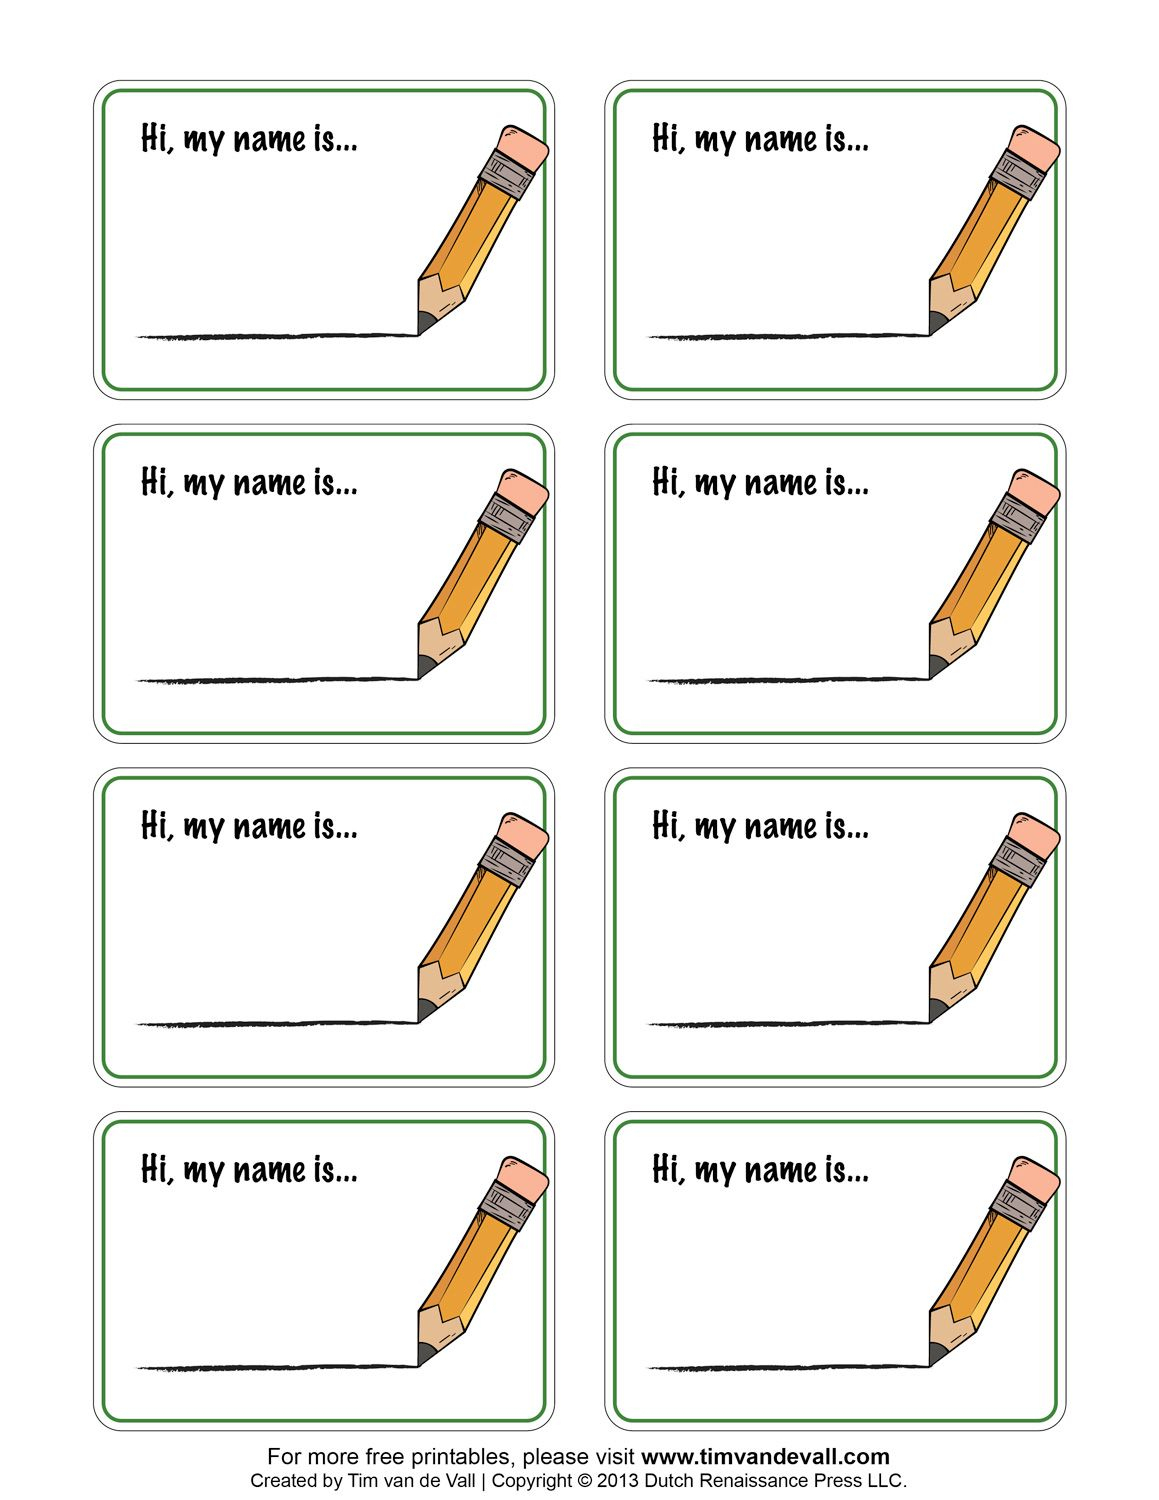 Pinken Geok On Labels | Pinterest | Printable Name Tags, Name - Free Printable Name Tags For Teachers